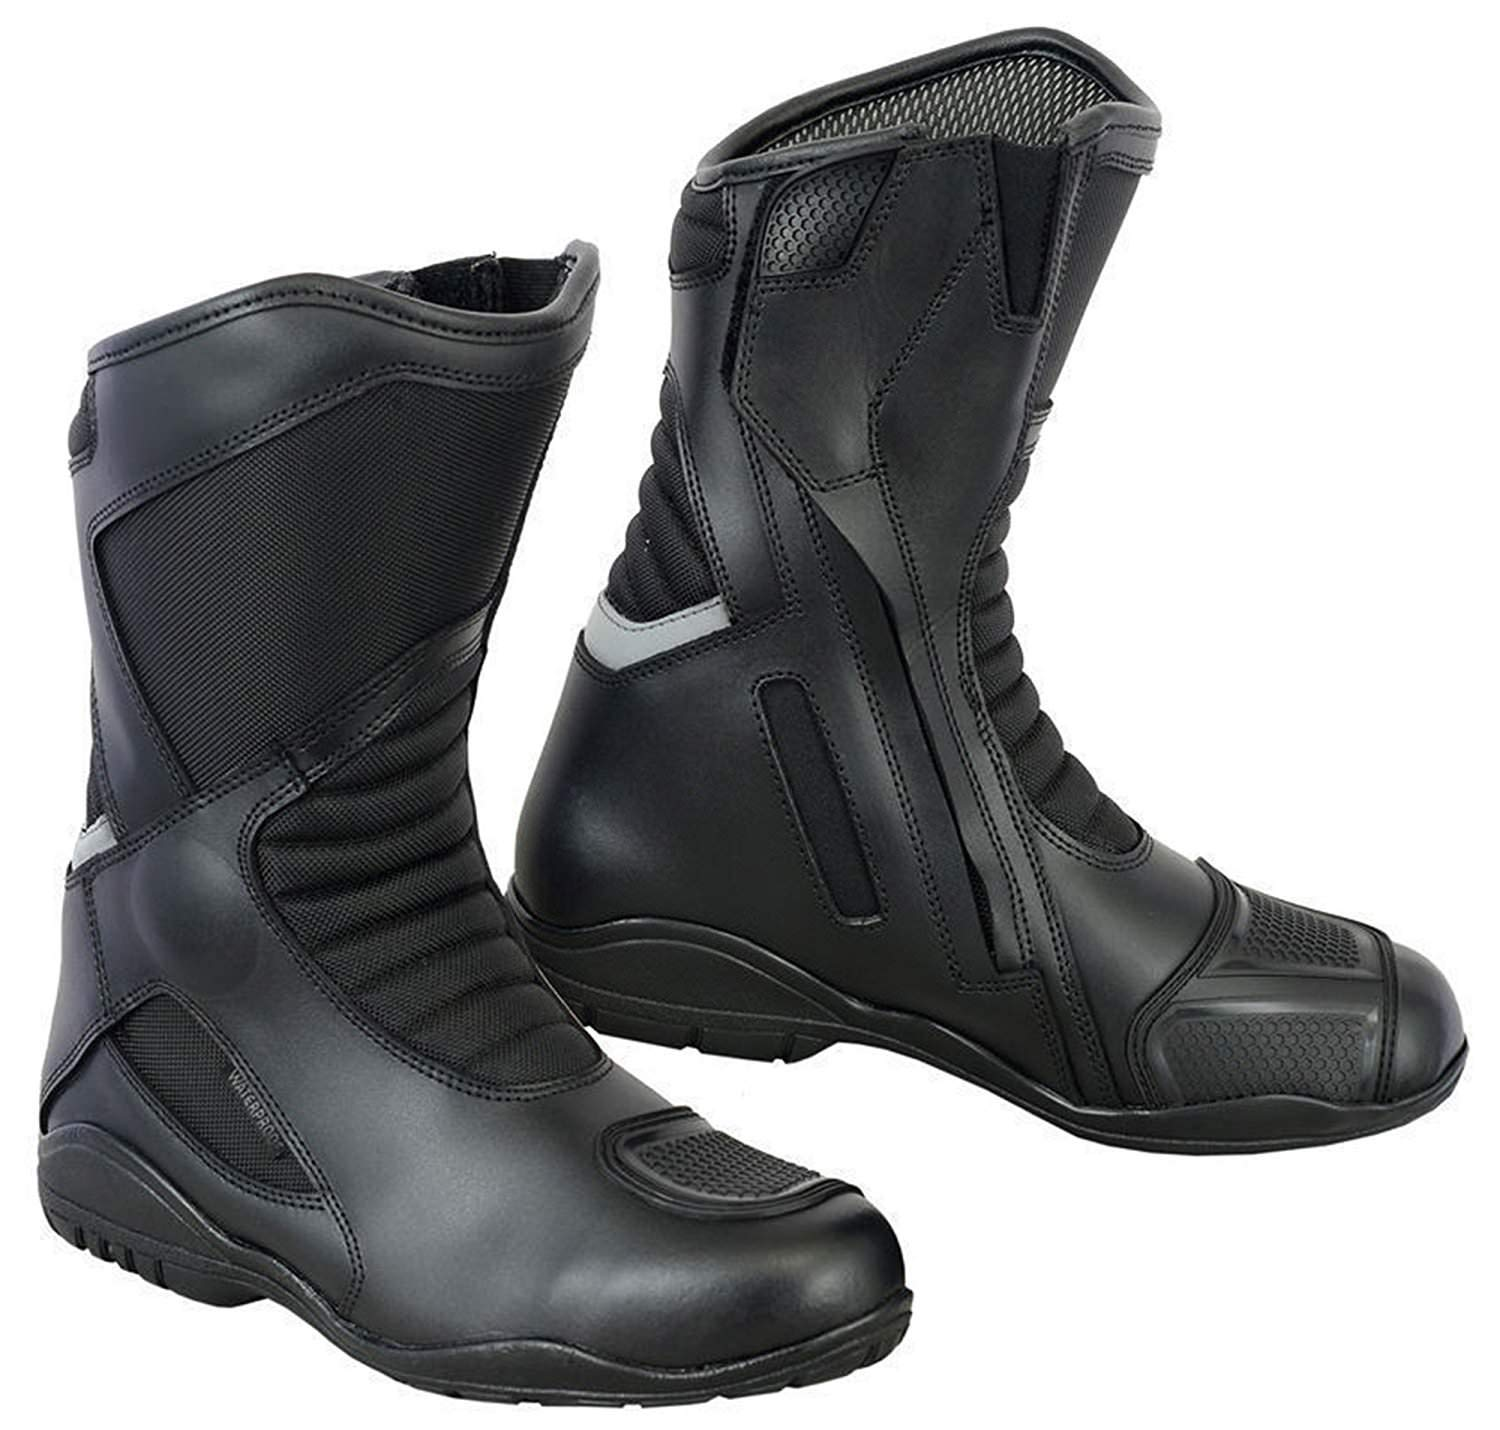 Size UK 8 Motorbike Boots Motorcycle Shoes Biker Racing Stylist Short Ankle Boot Motorcycle Track Touring Shoes Waterproof Armoured for Mens Boys Rider